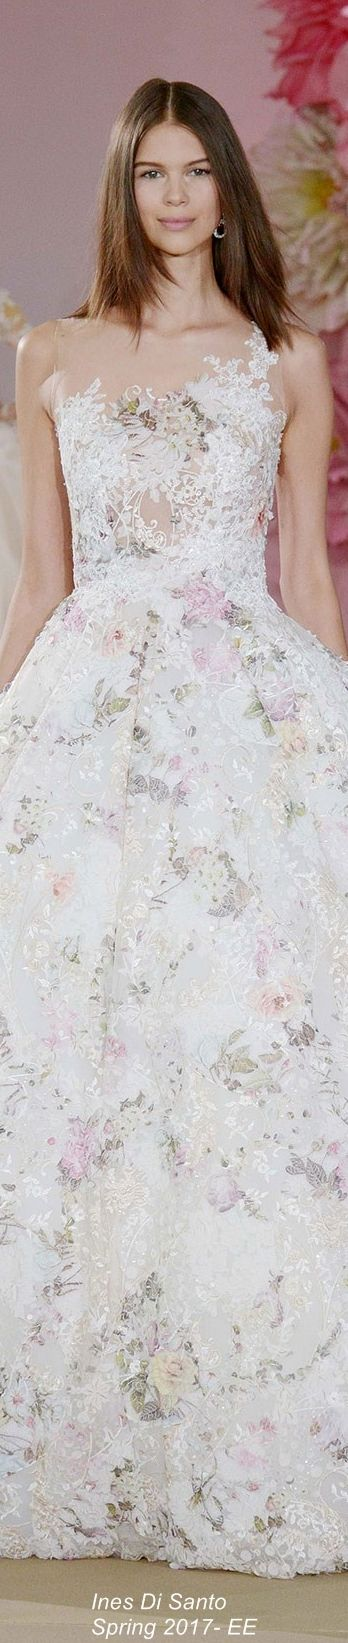 Ines Di Santo – Spring 2017 Collection - EE